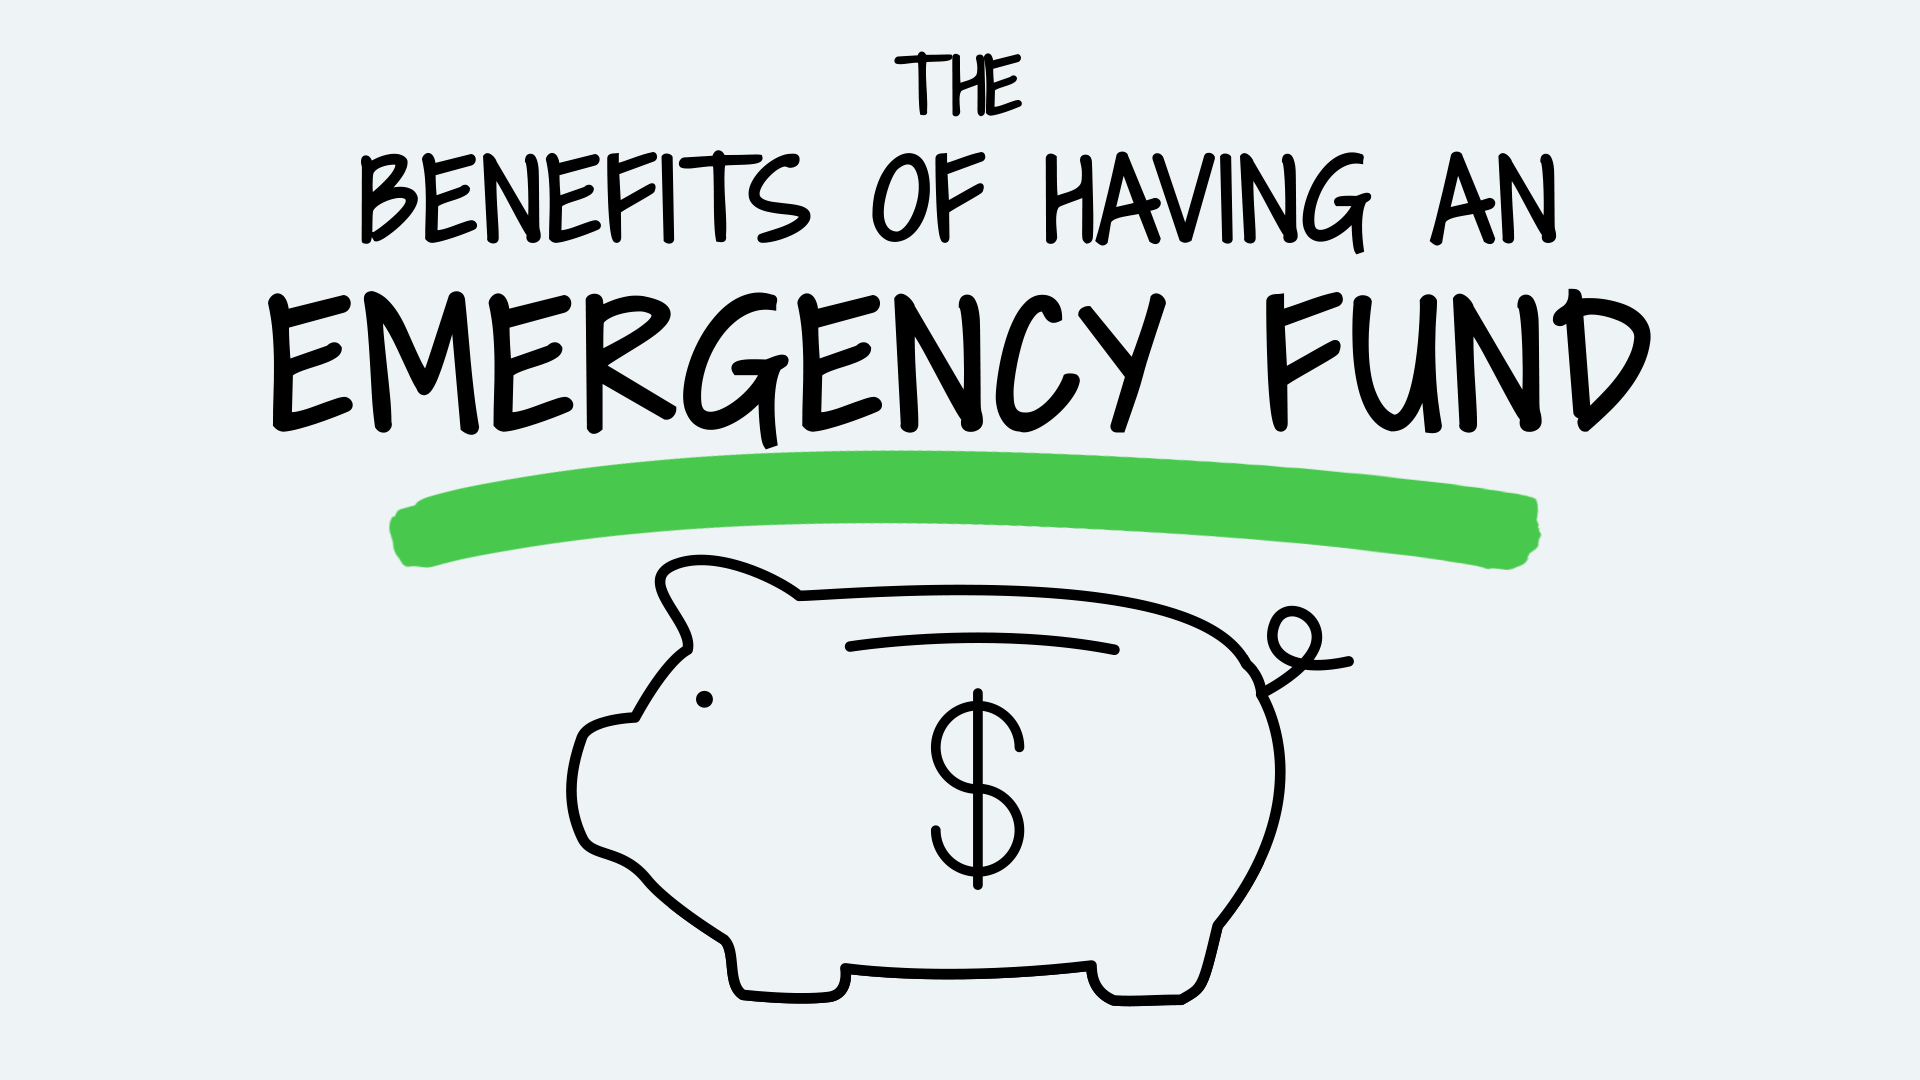 The Benefits of an Emergency Fund